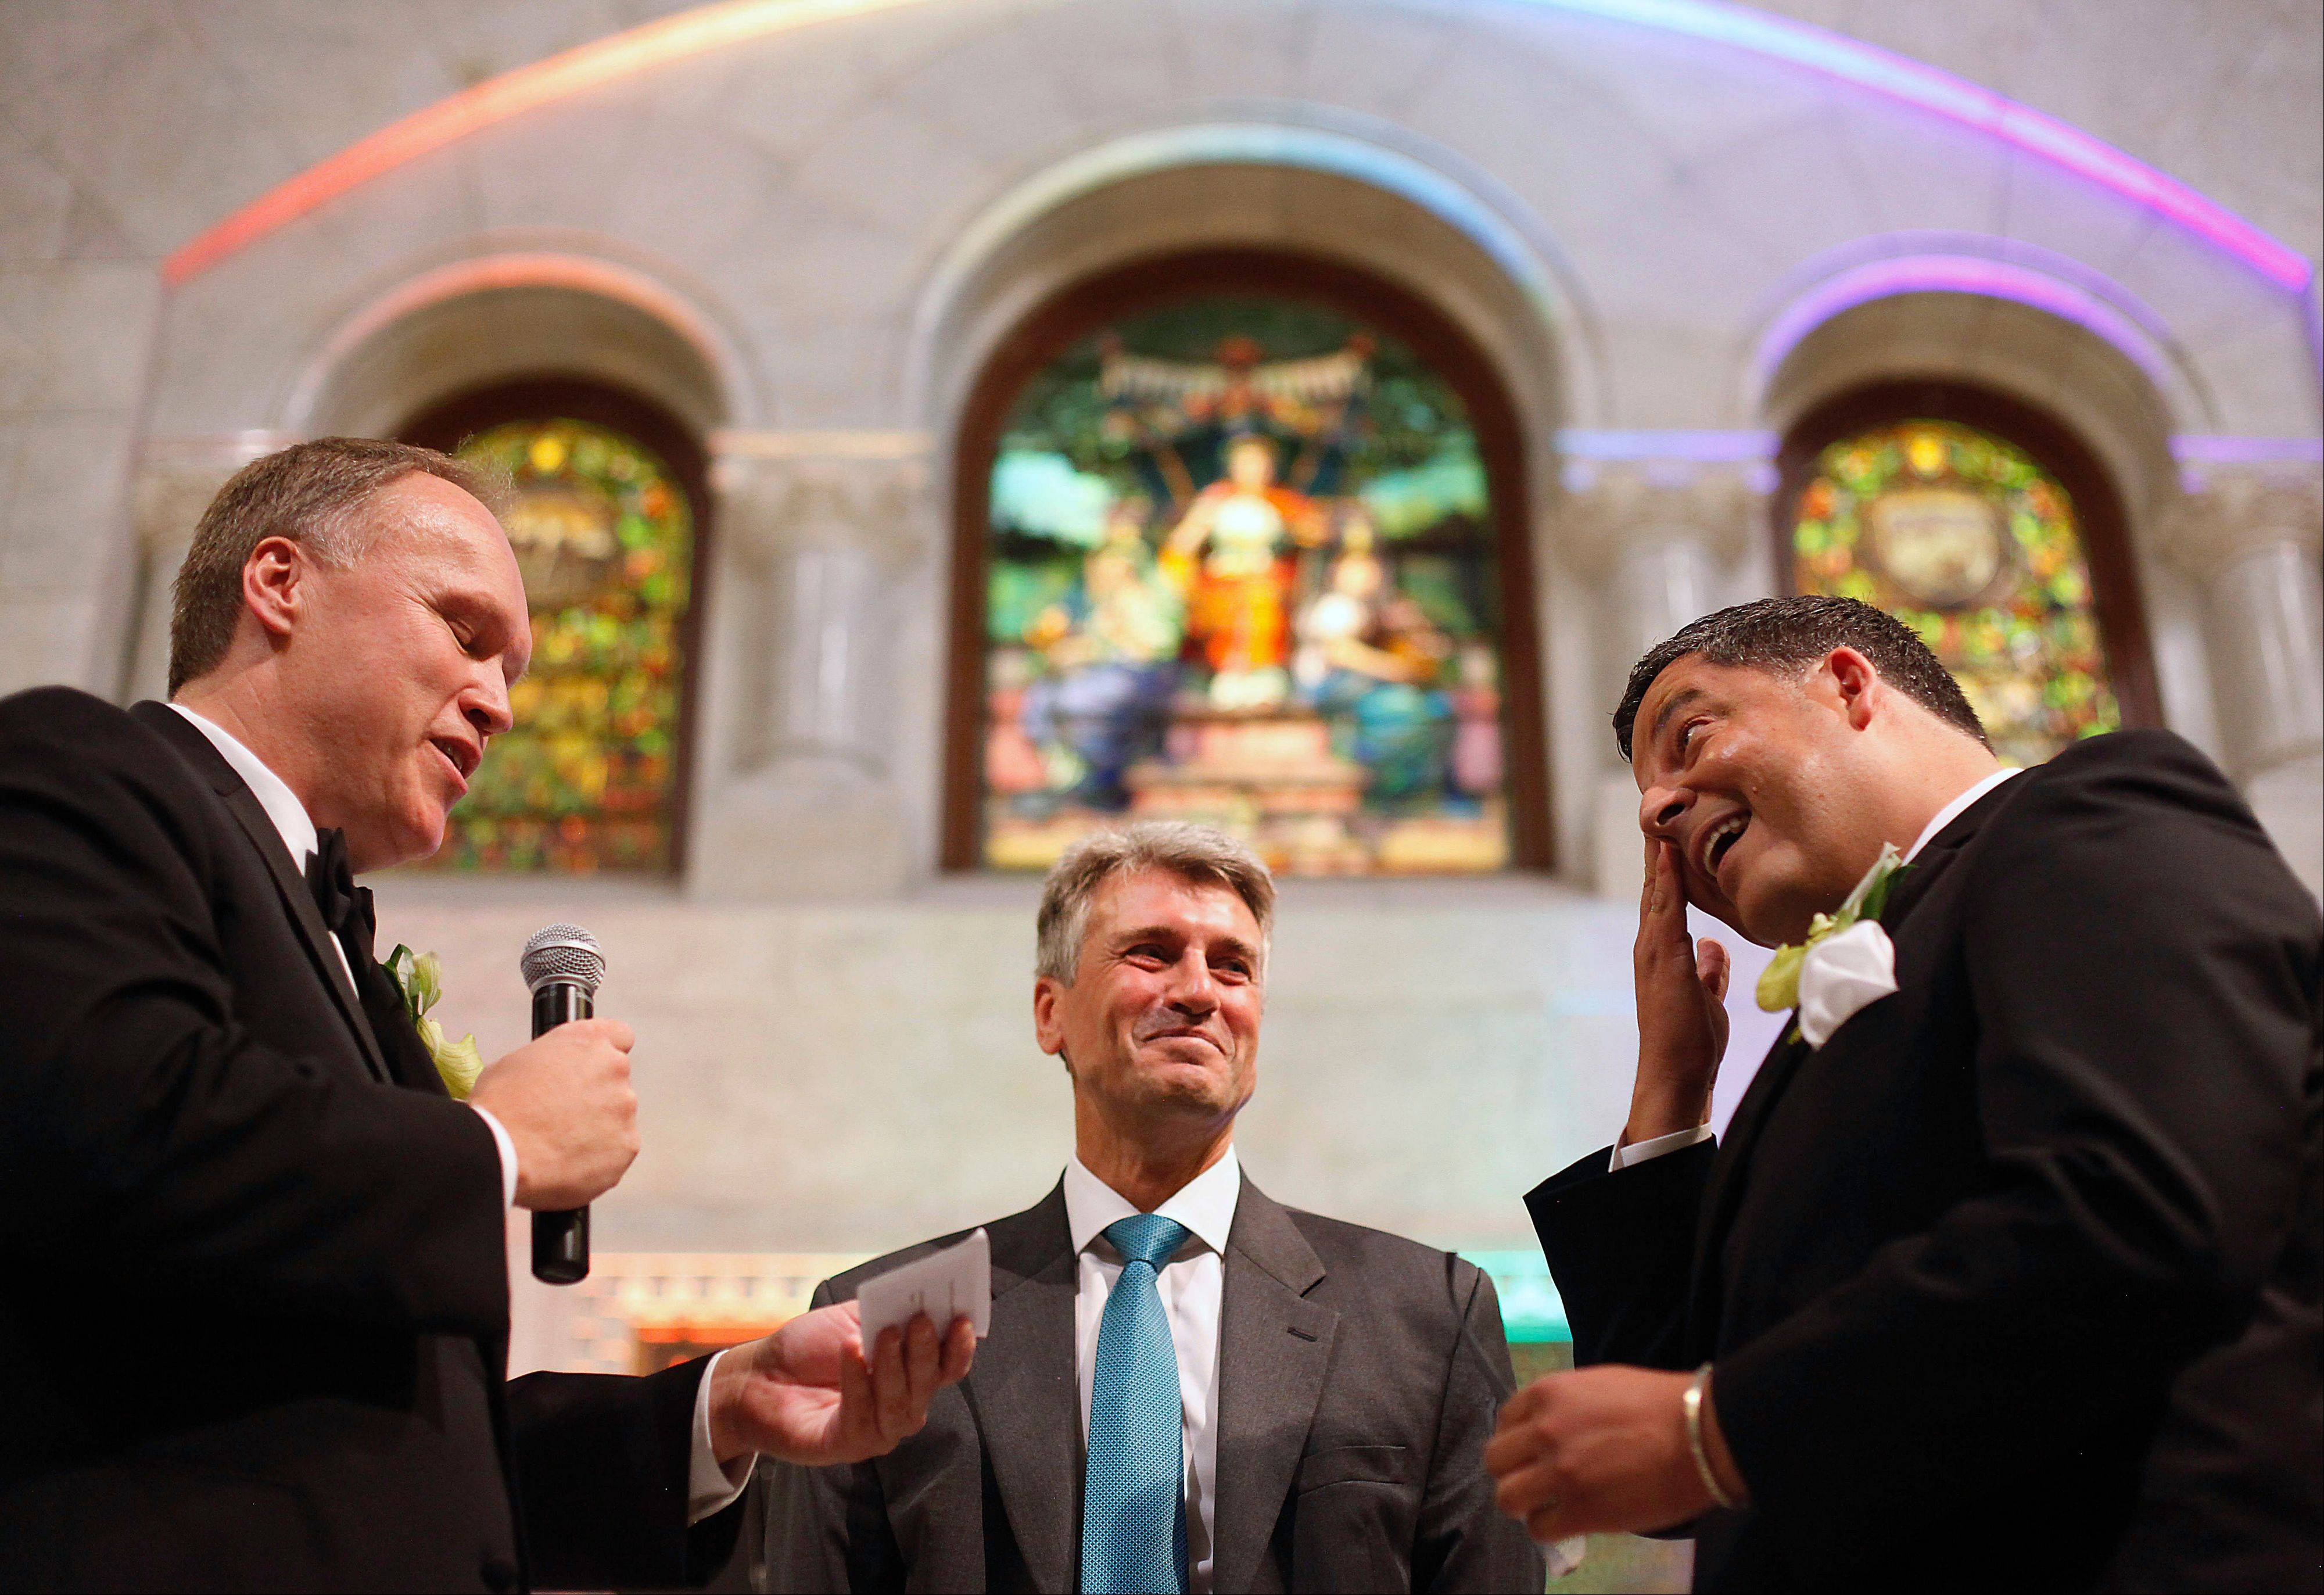 Minneapolis Mayor R.T. Rybak, center, officiates at the wedding of Al Giraud, right, and his partner, Jeff Isaacson, at the Minneapolis City Hall. They were the first gay couple legally married in Minnesota. Rybak is hitting the road to promote his state's new gay marriage law.